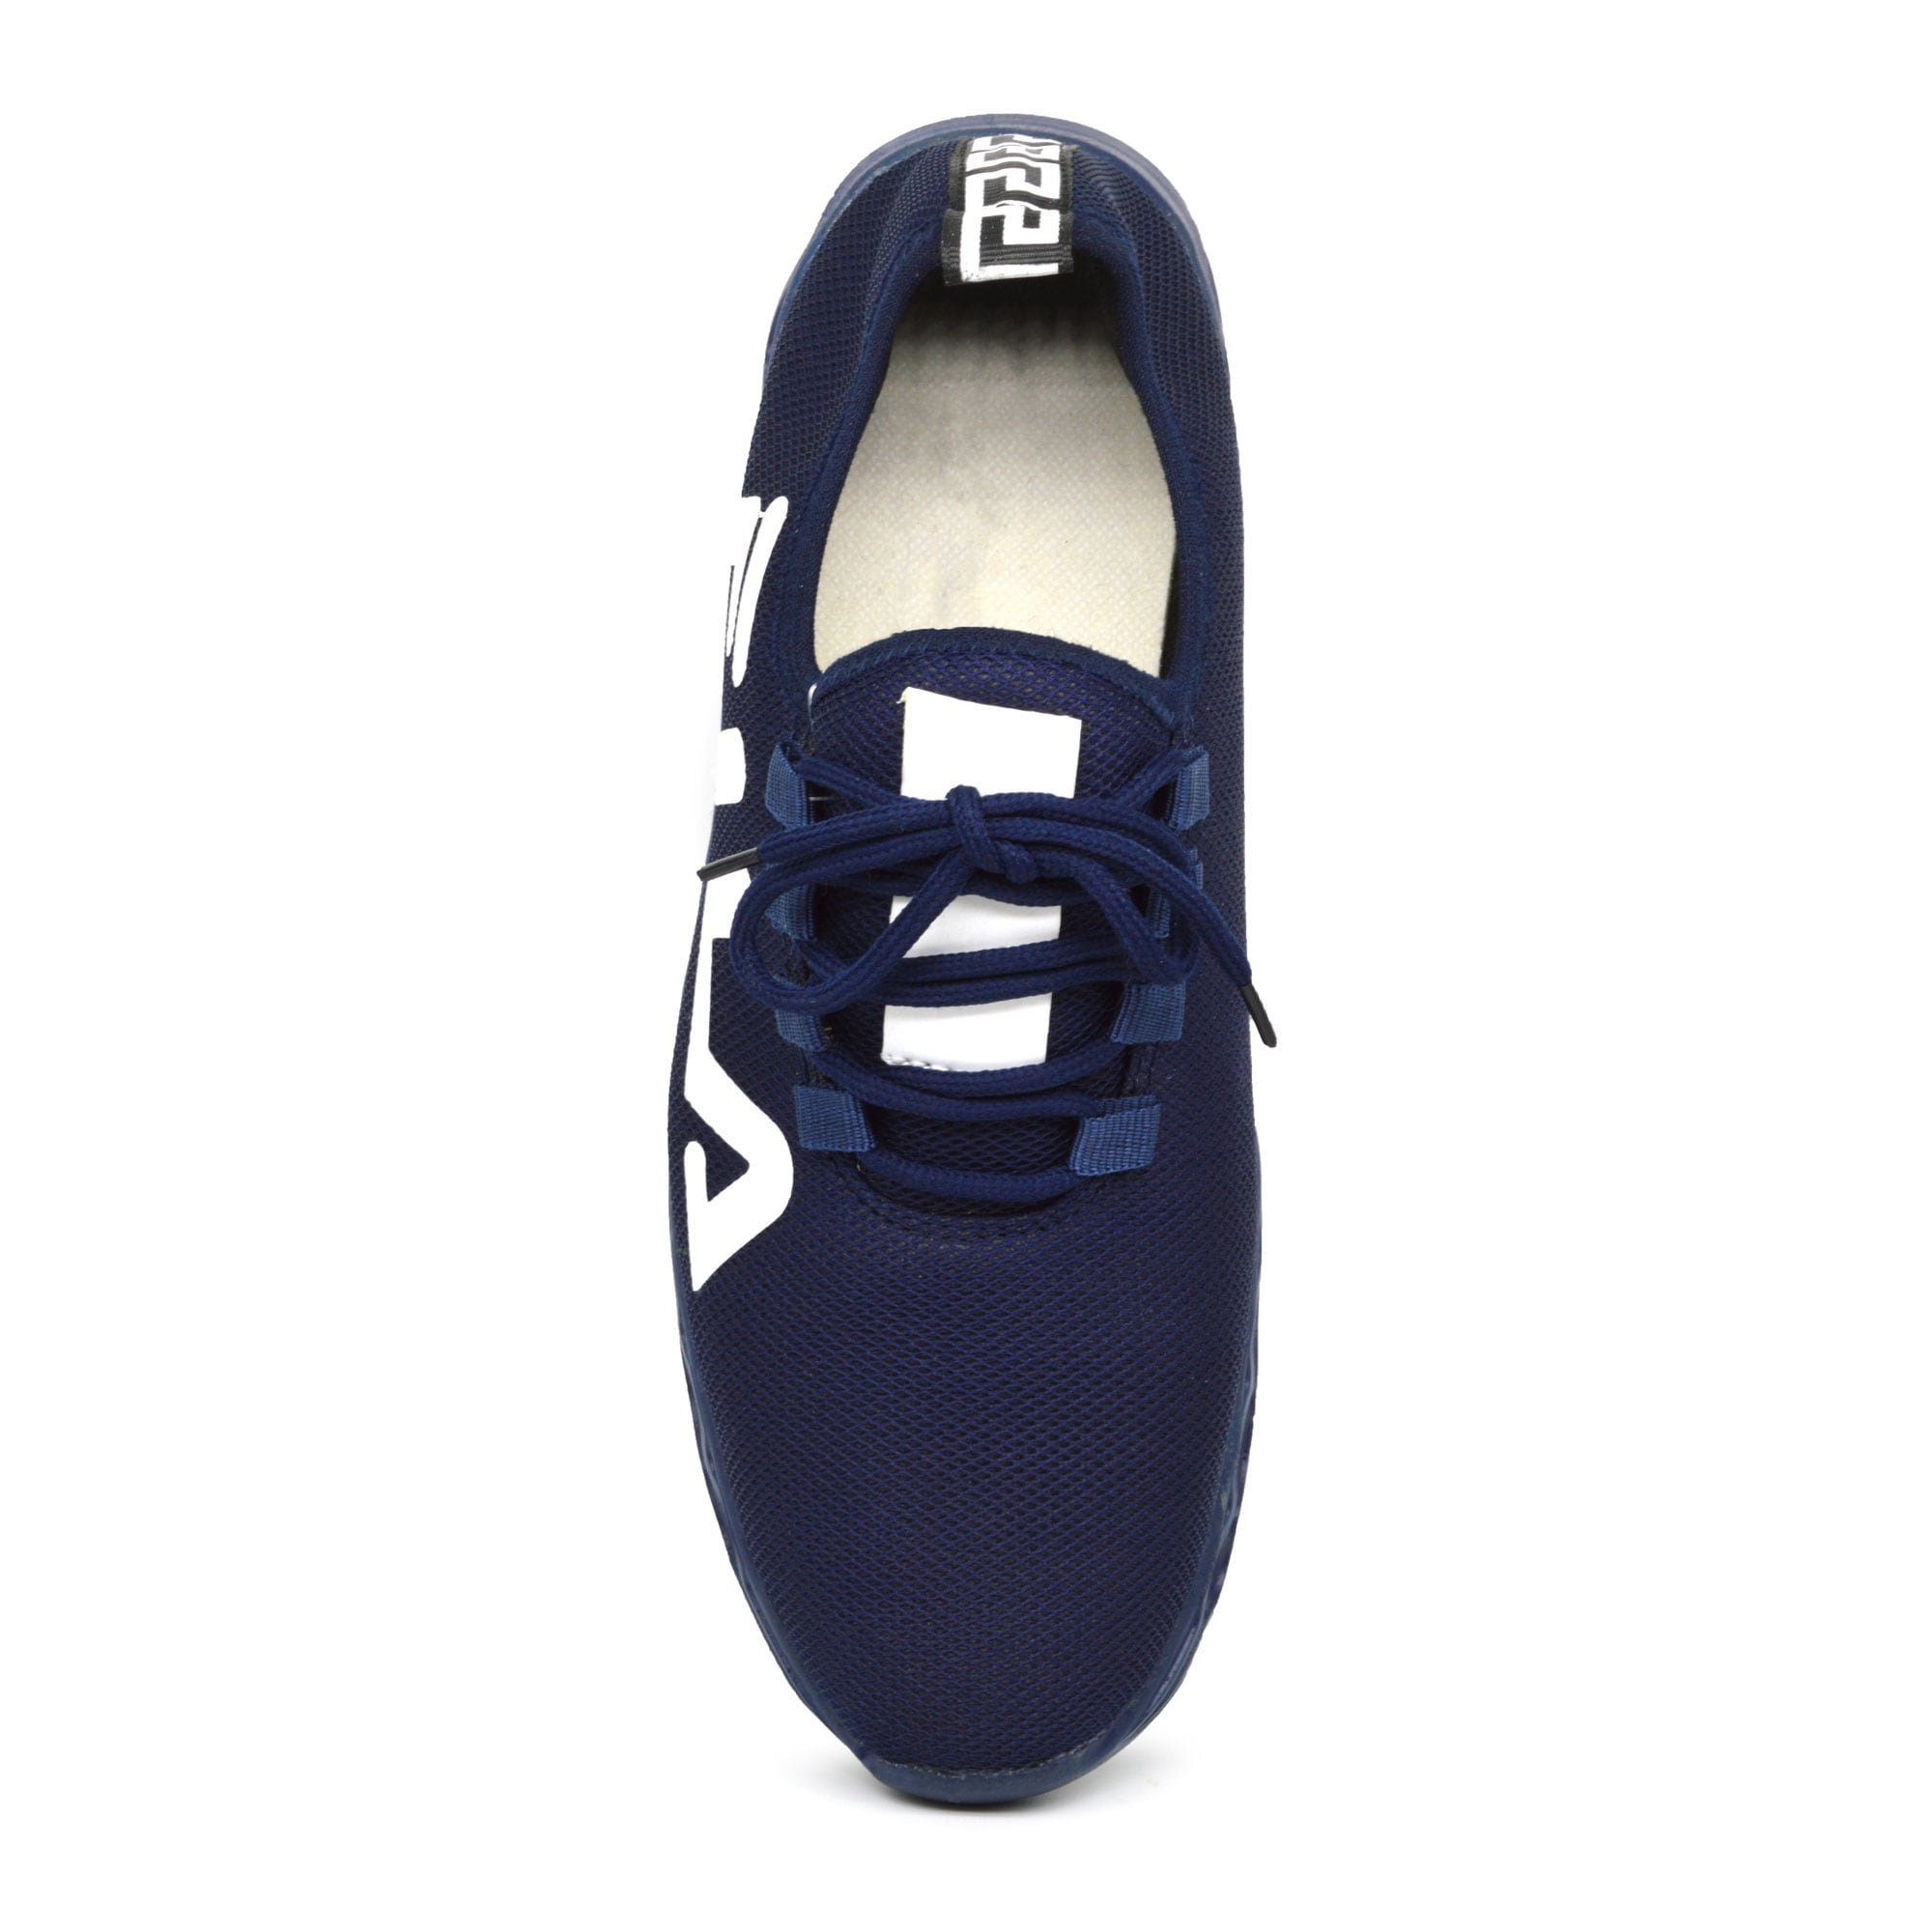 IMCOLUS12.171_NAVYBLUE  OUTDOOR WEAR & FLEXIBLE MENS Sports Shoes SHOES  IMCOLUS12.171NBLUE (NAVYBLUE,6TO10,8 PAIR)